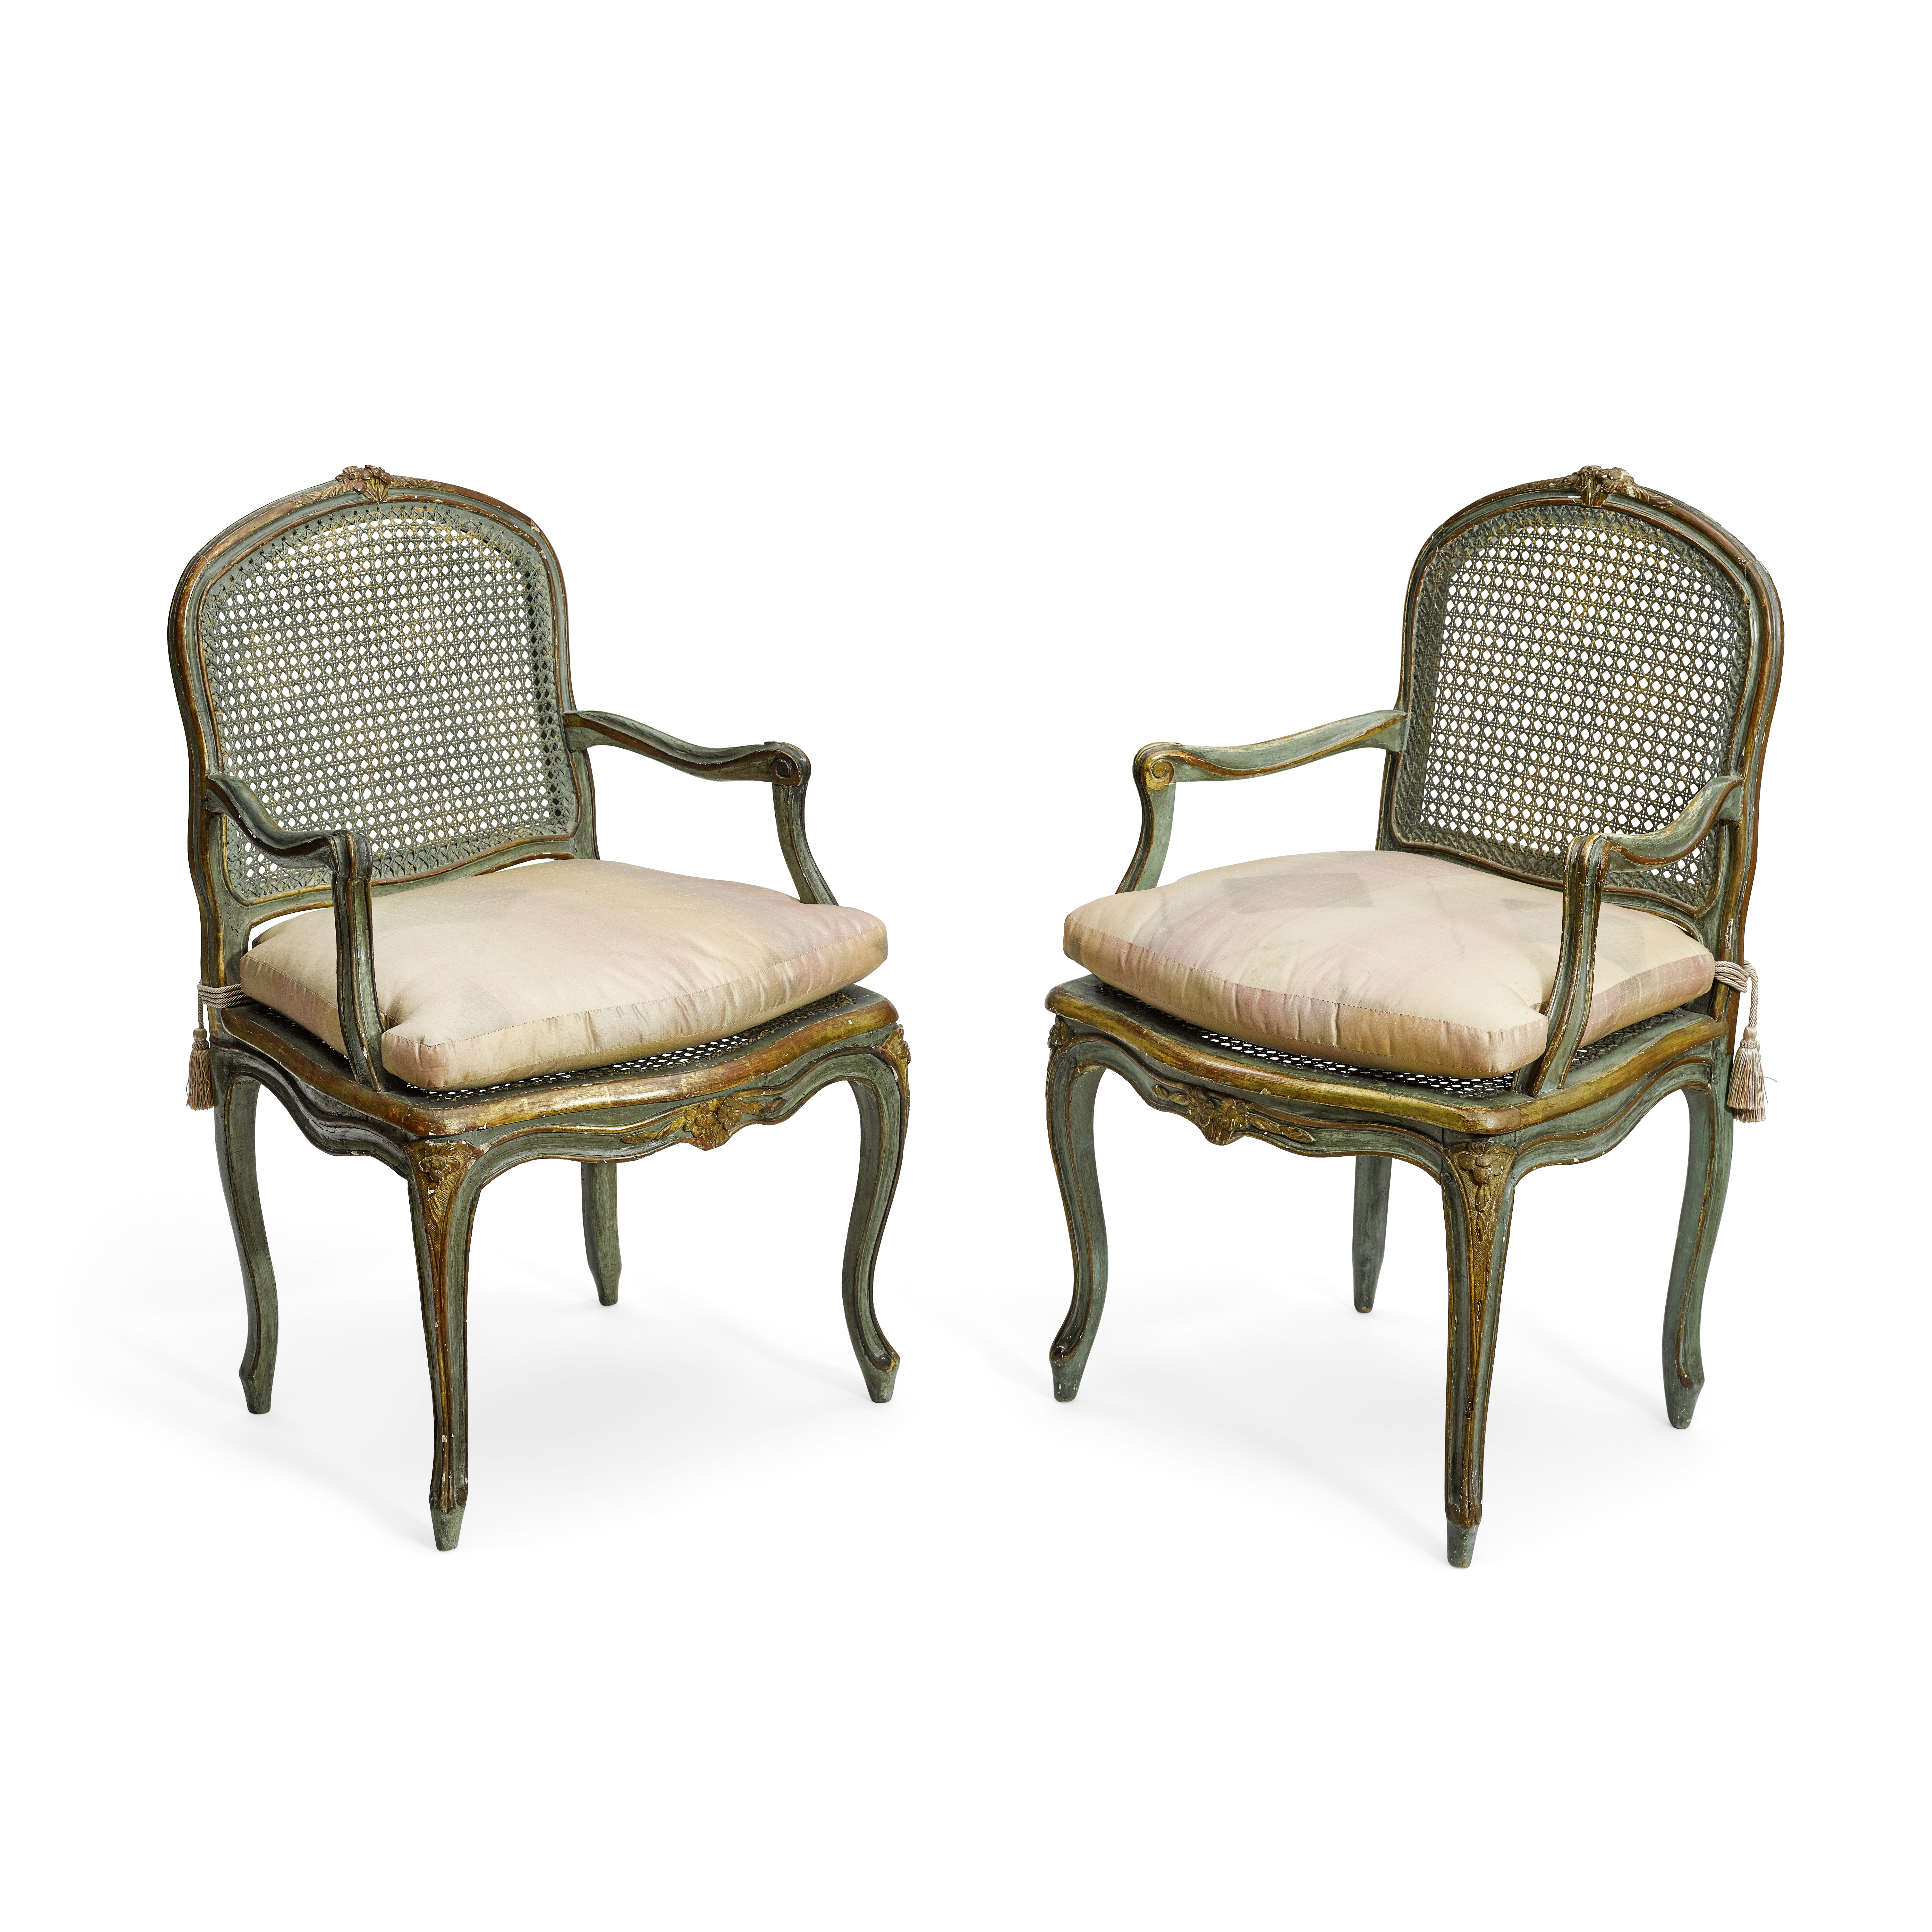 Lot 162 - A pair of Louis XV Parcel Gilt and Painted Fauteuils 18th century